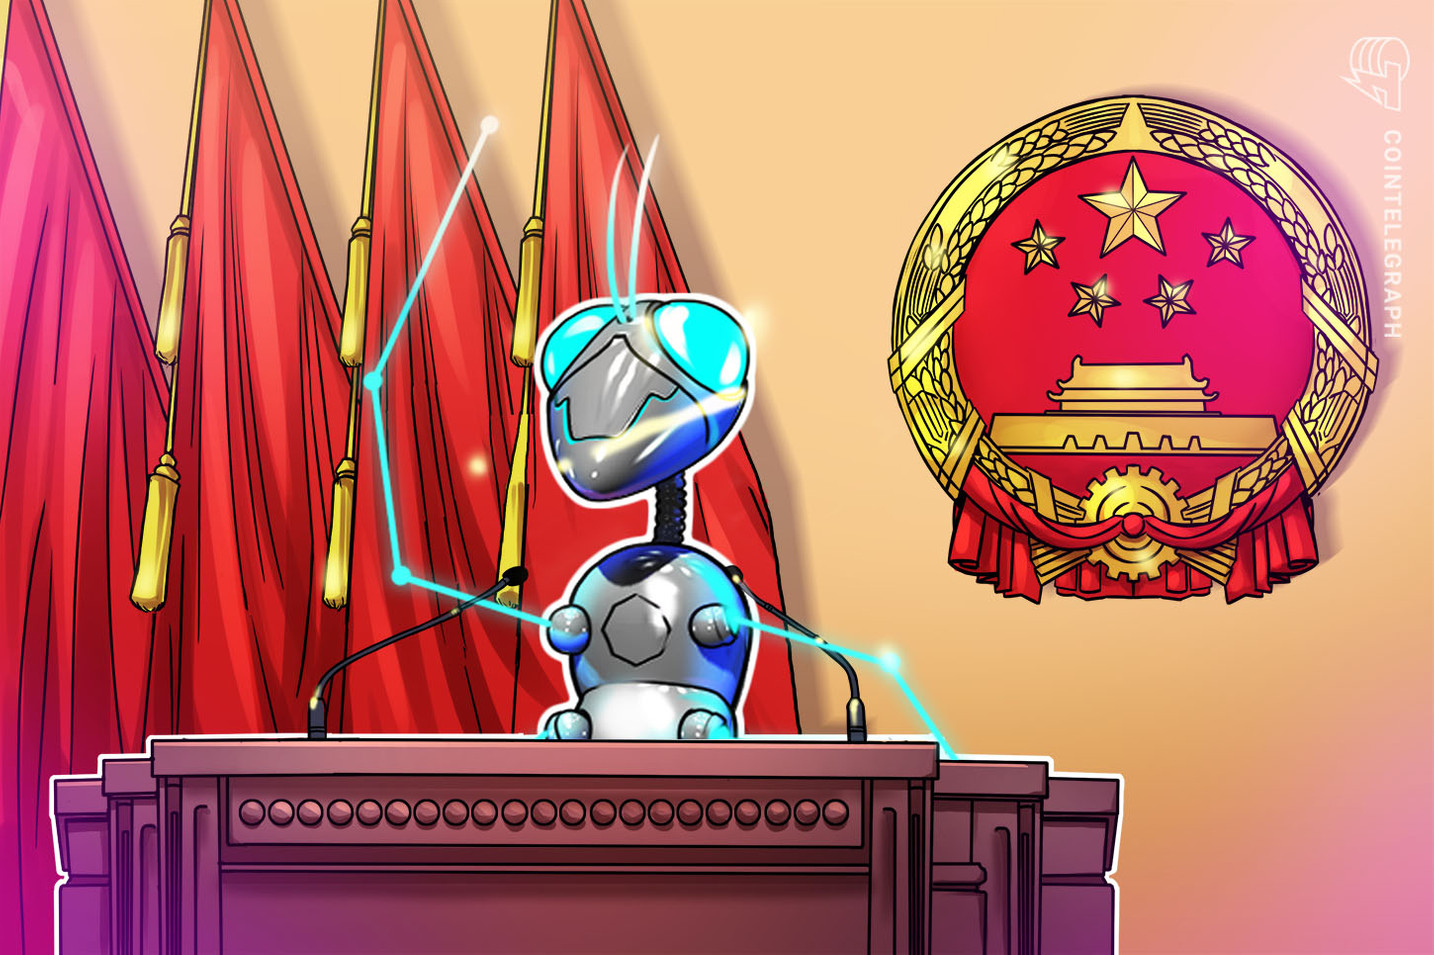 China's Cyberspace Regulators Approve 224 Blockchain Ventures